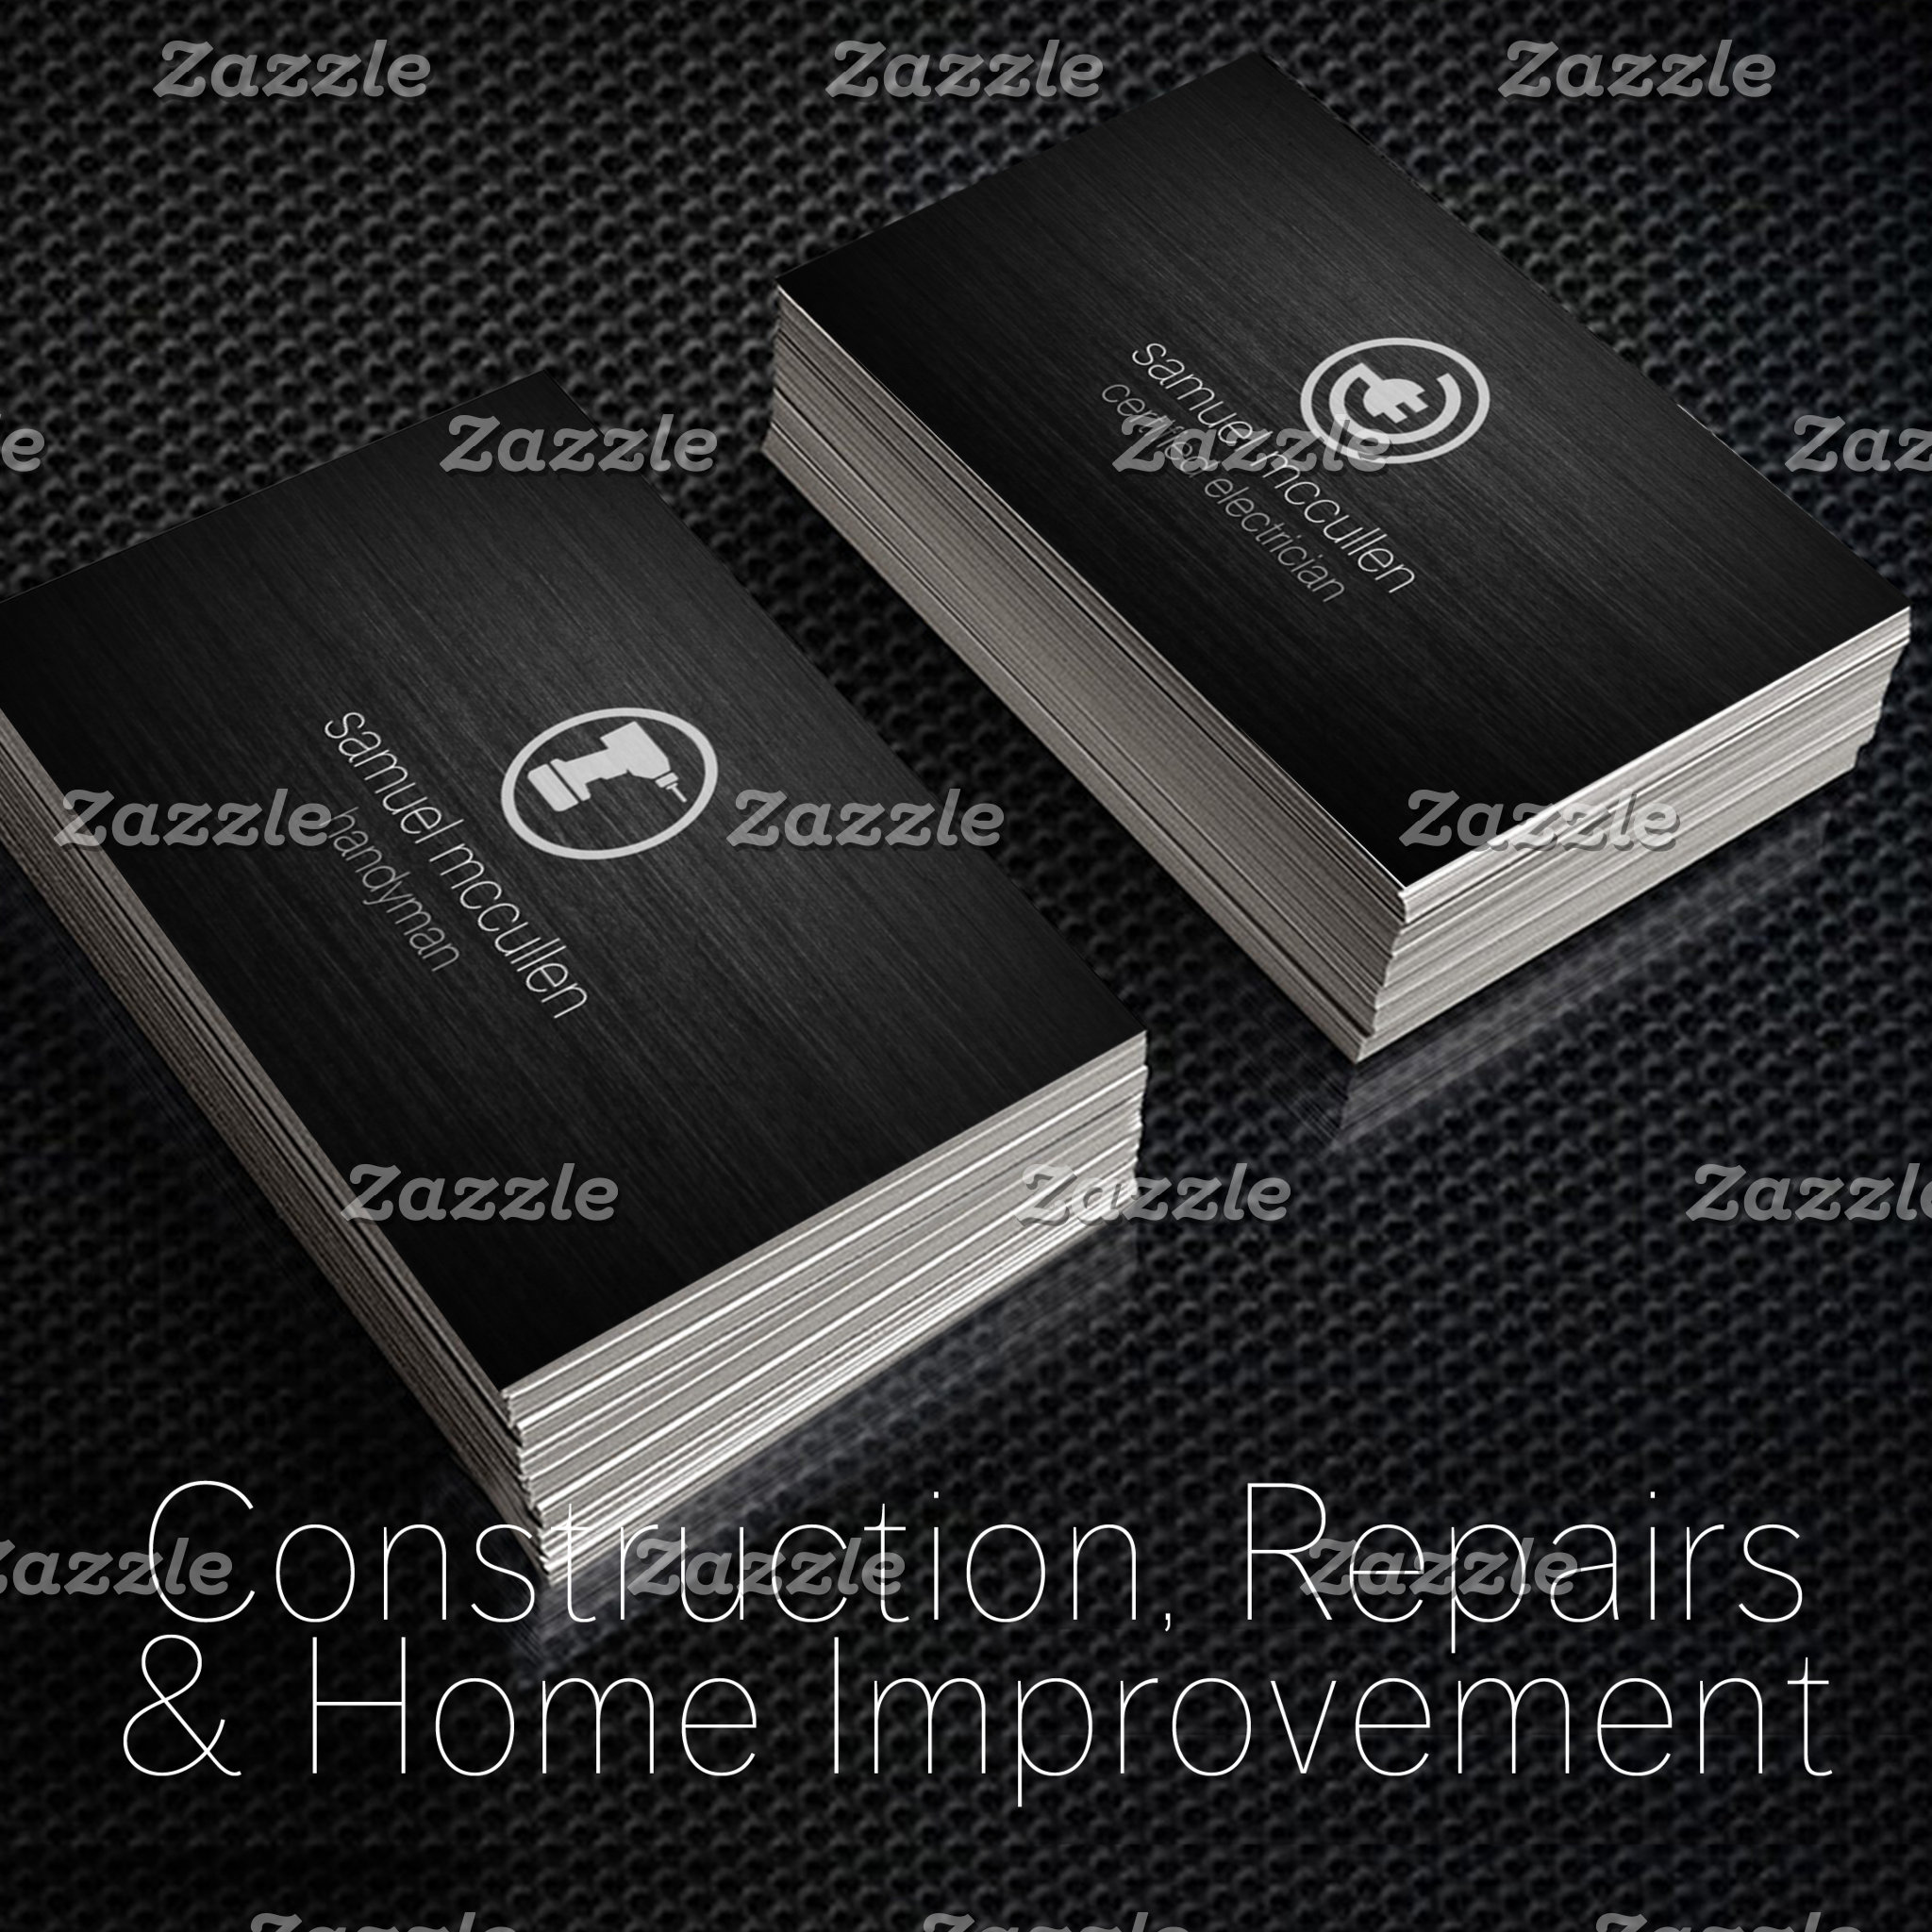 Construction, Repairs and Home Improvement